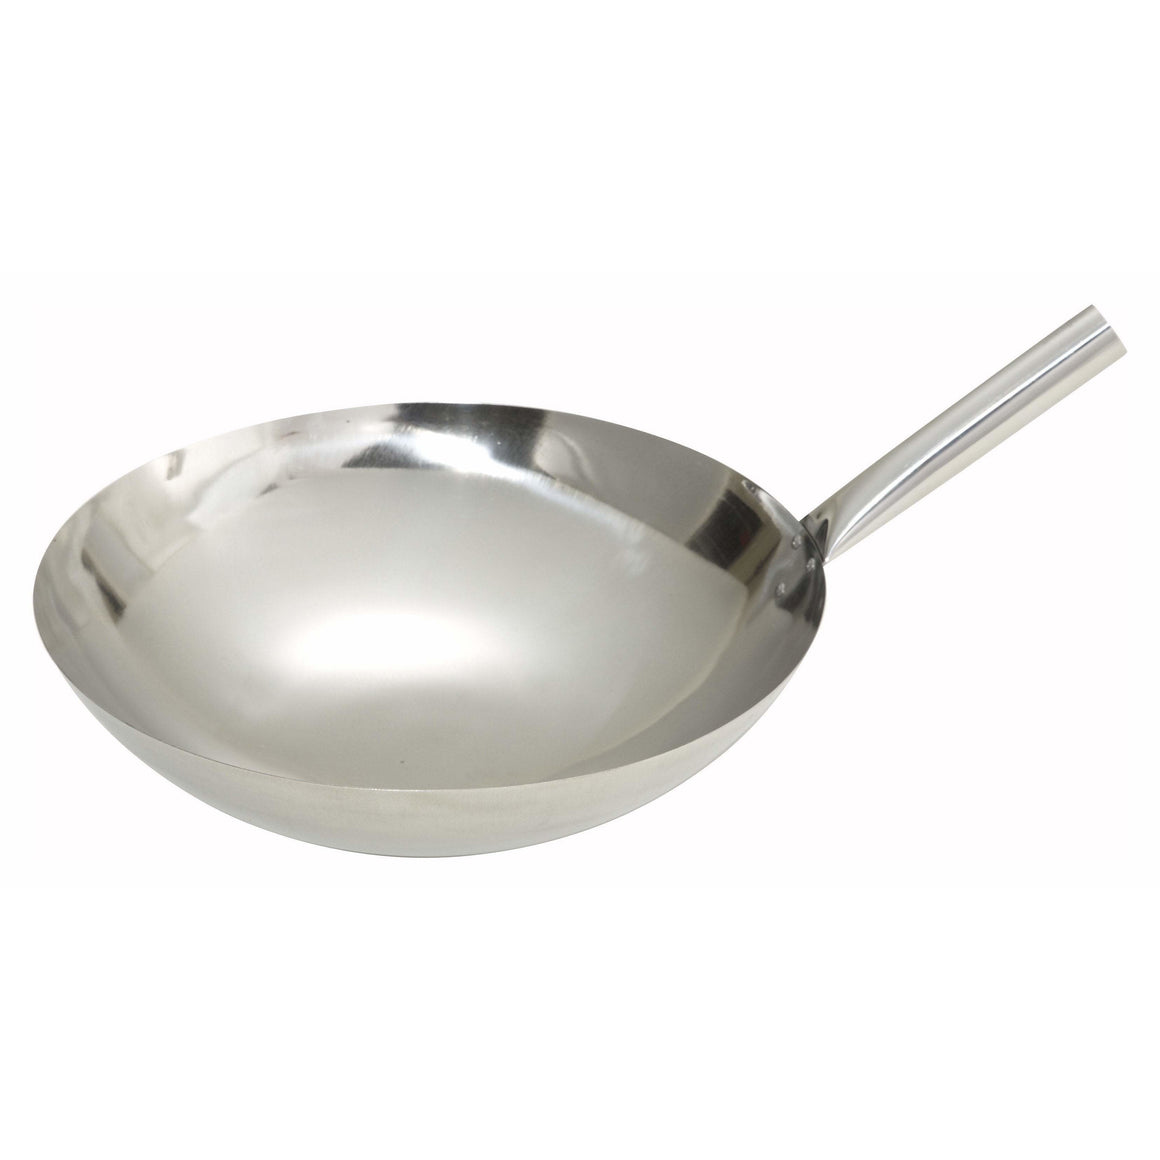 "Winco - WOK-14N - 14"" Stainless Steel Wok, Nailed Joint - Cookware"